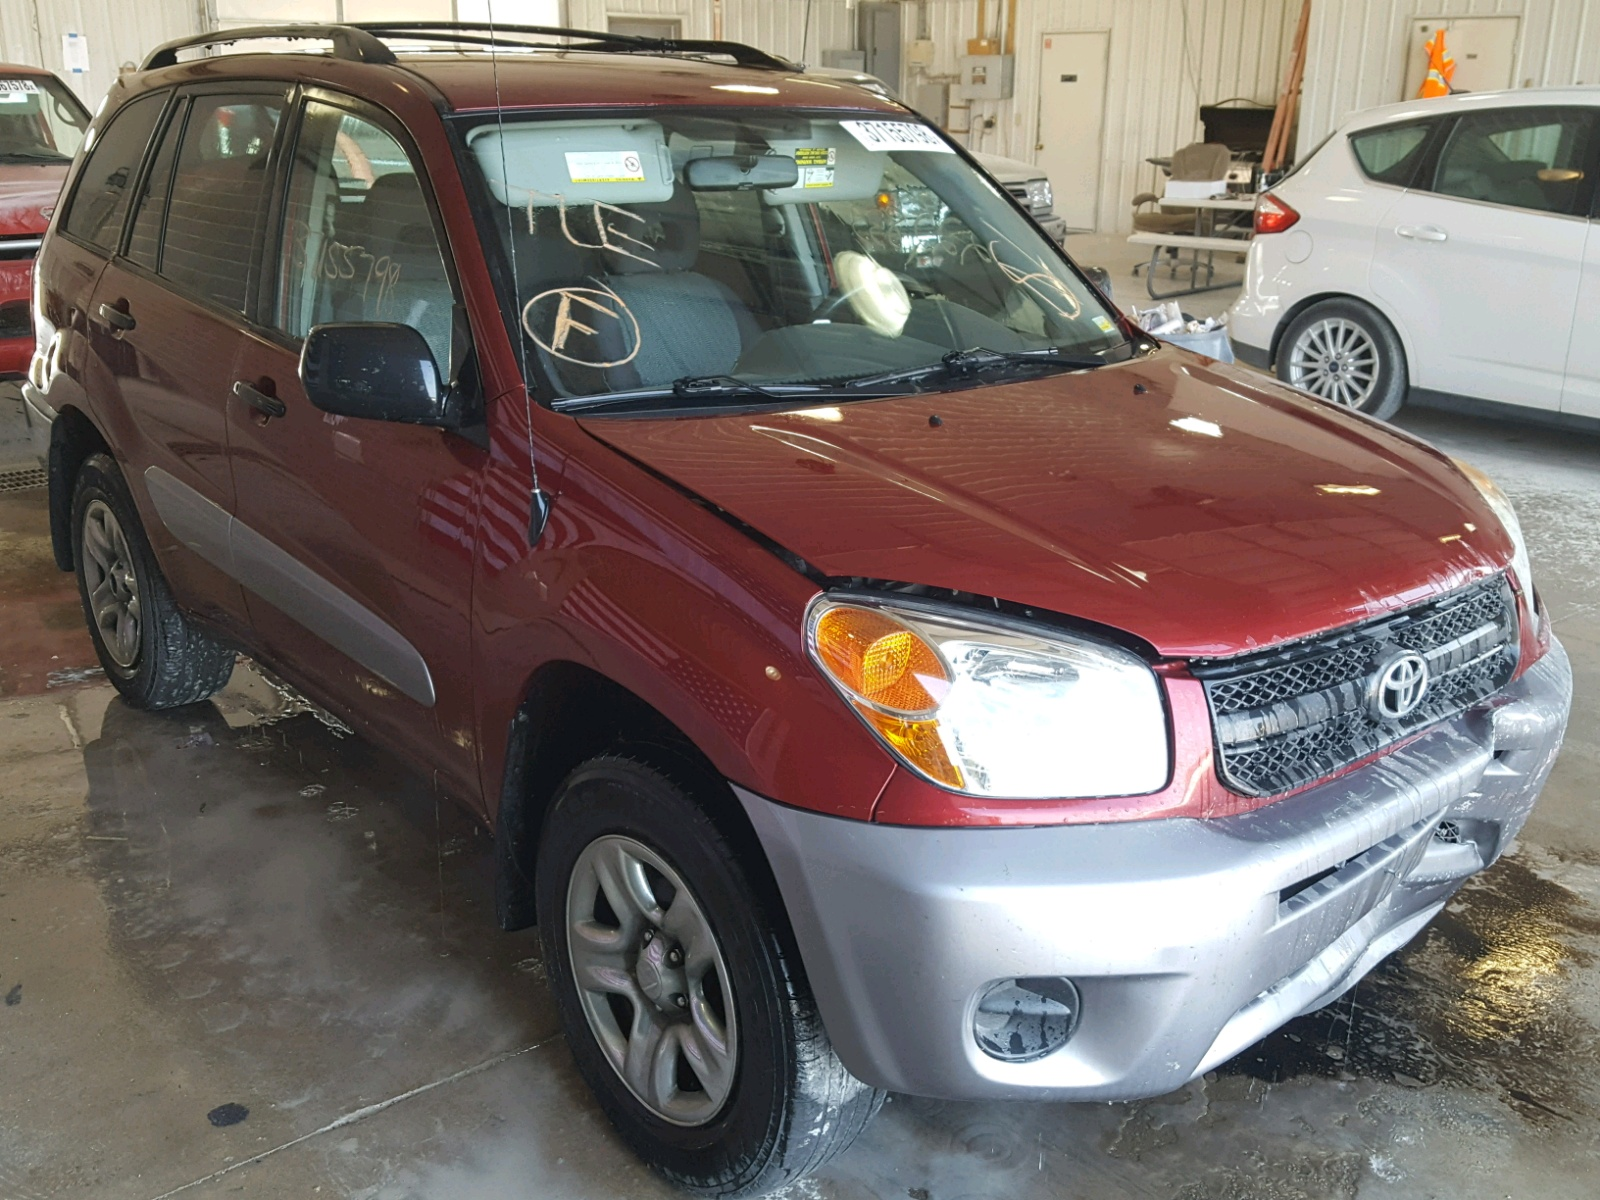 2005 Toyota Rav4 for sale at Copart Columbia MO Lot